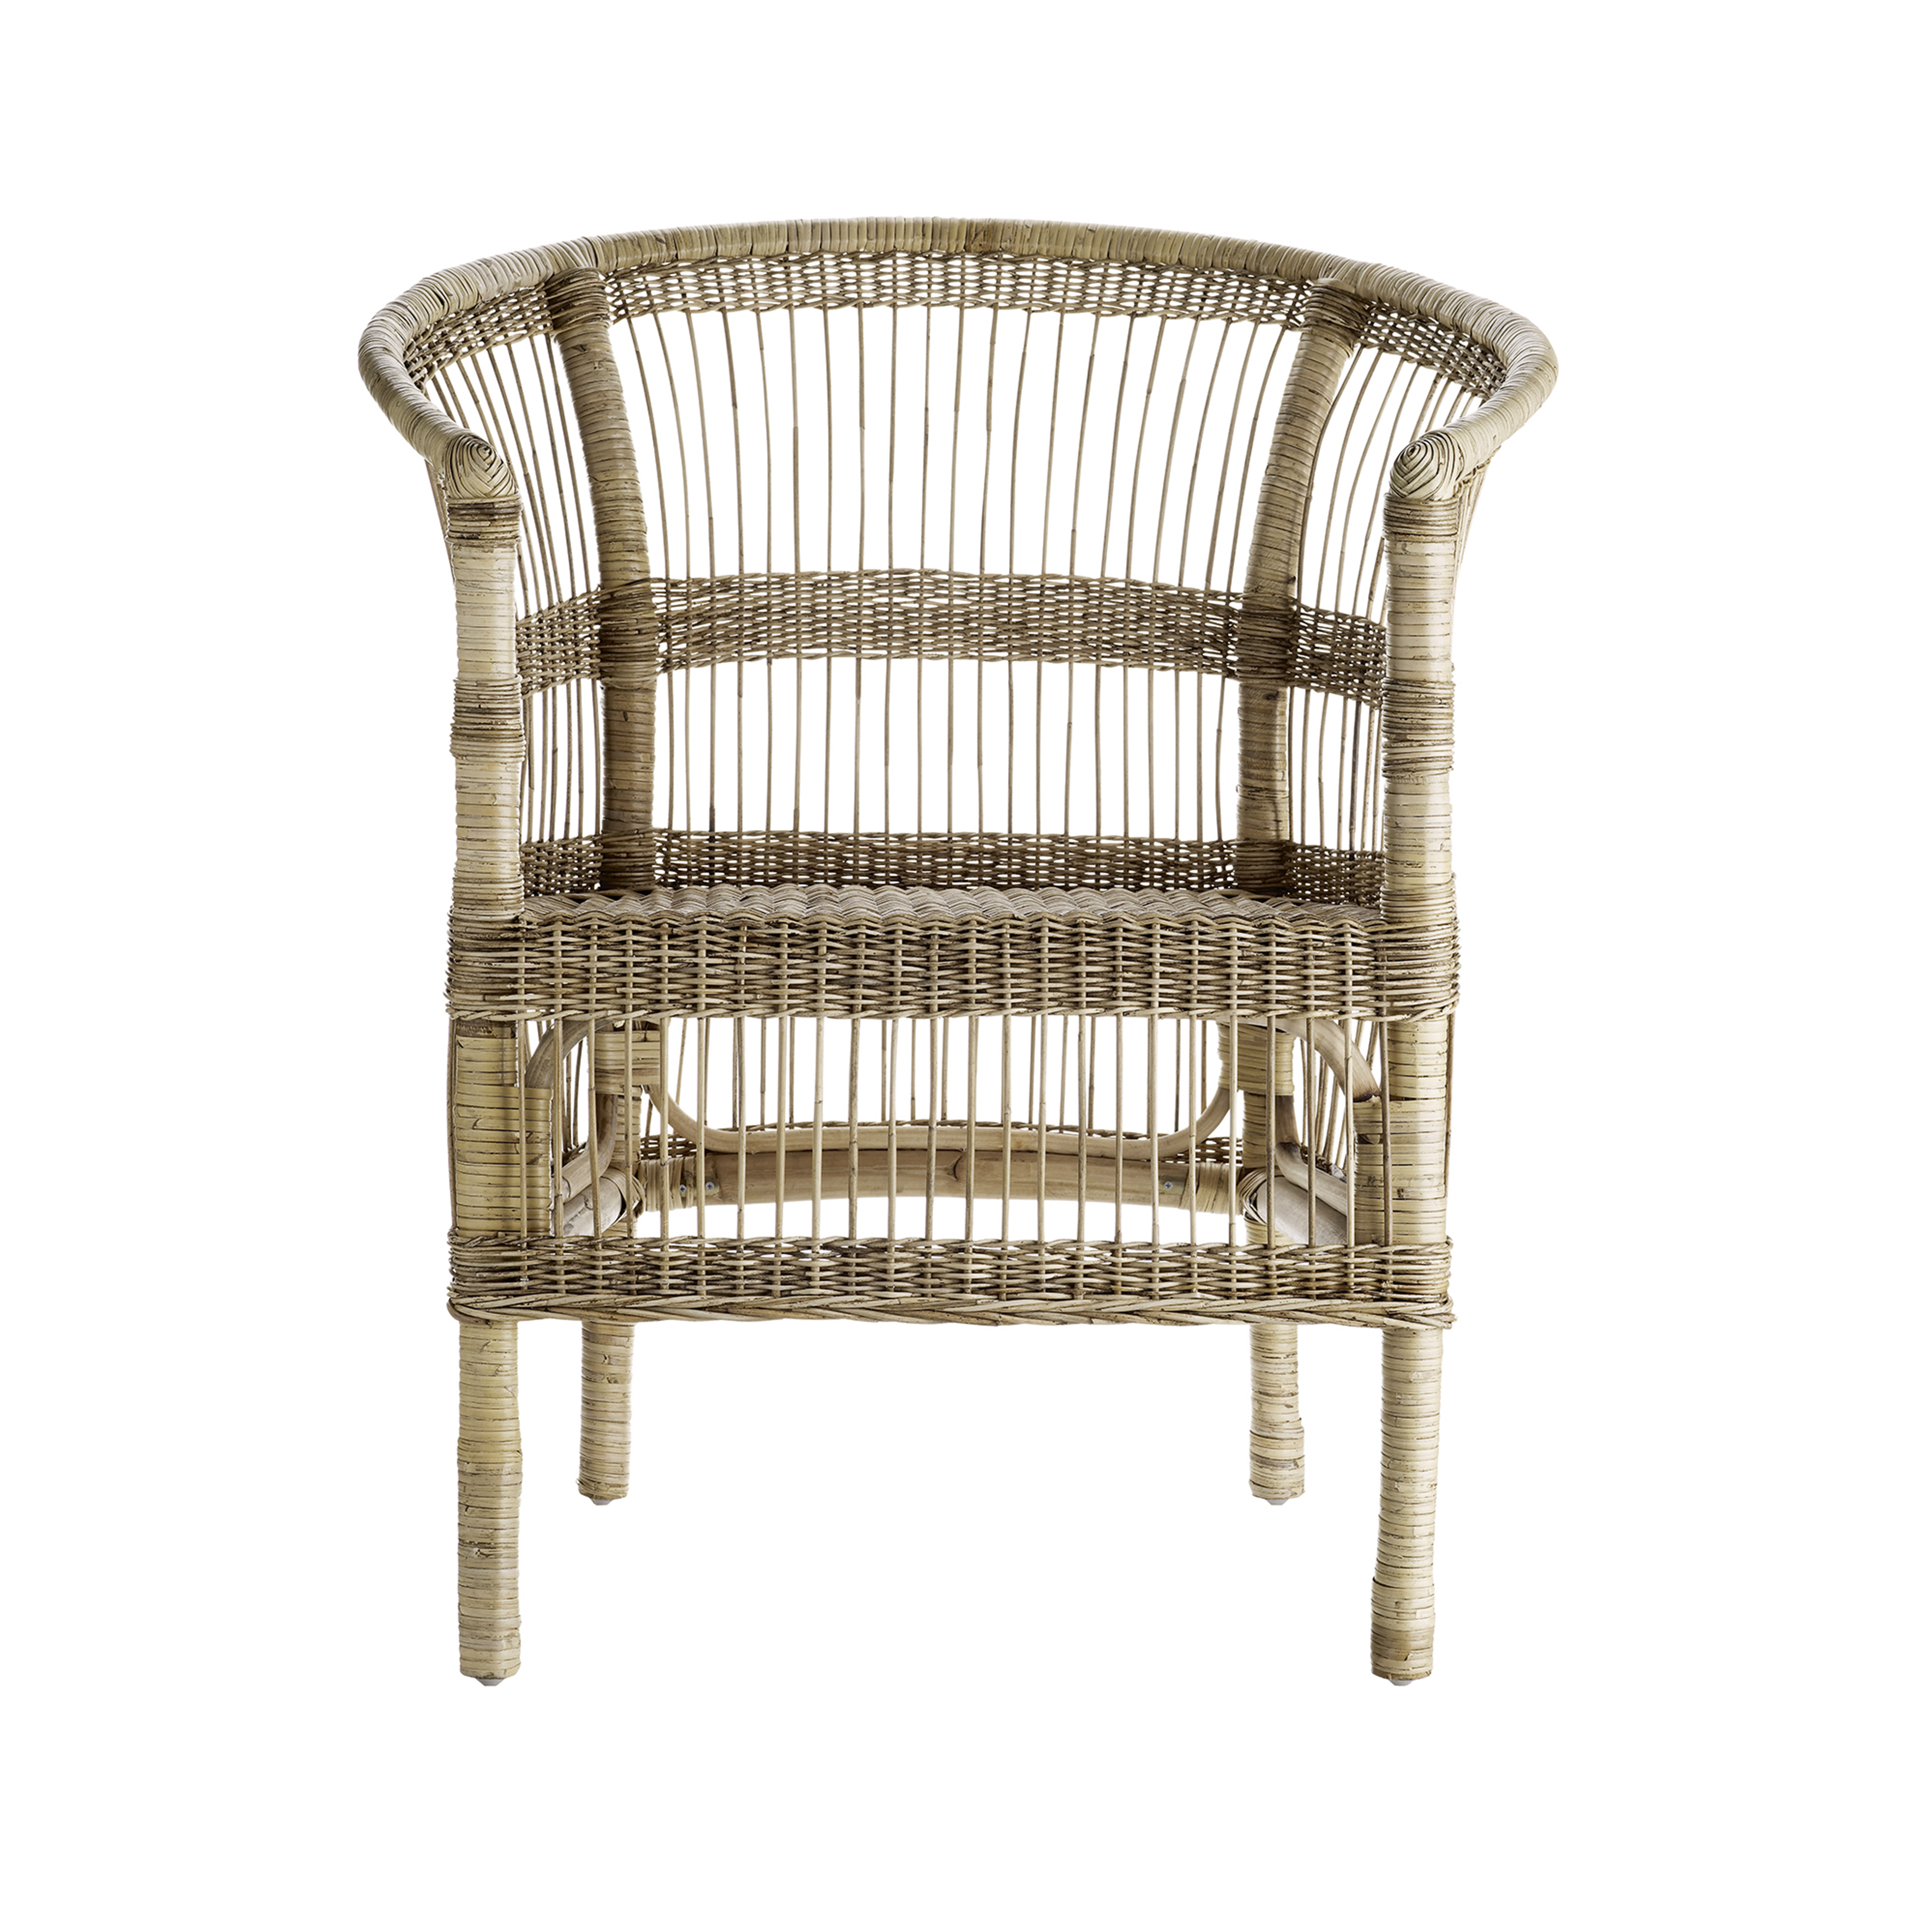 Rattan chair woven after traditional craft techniques products tine k home